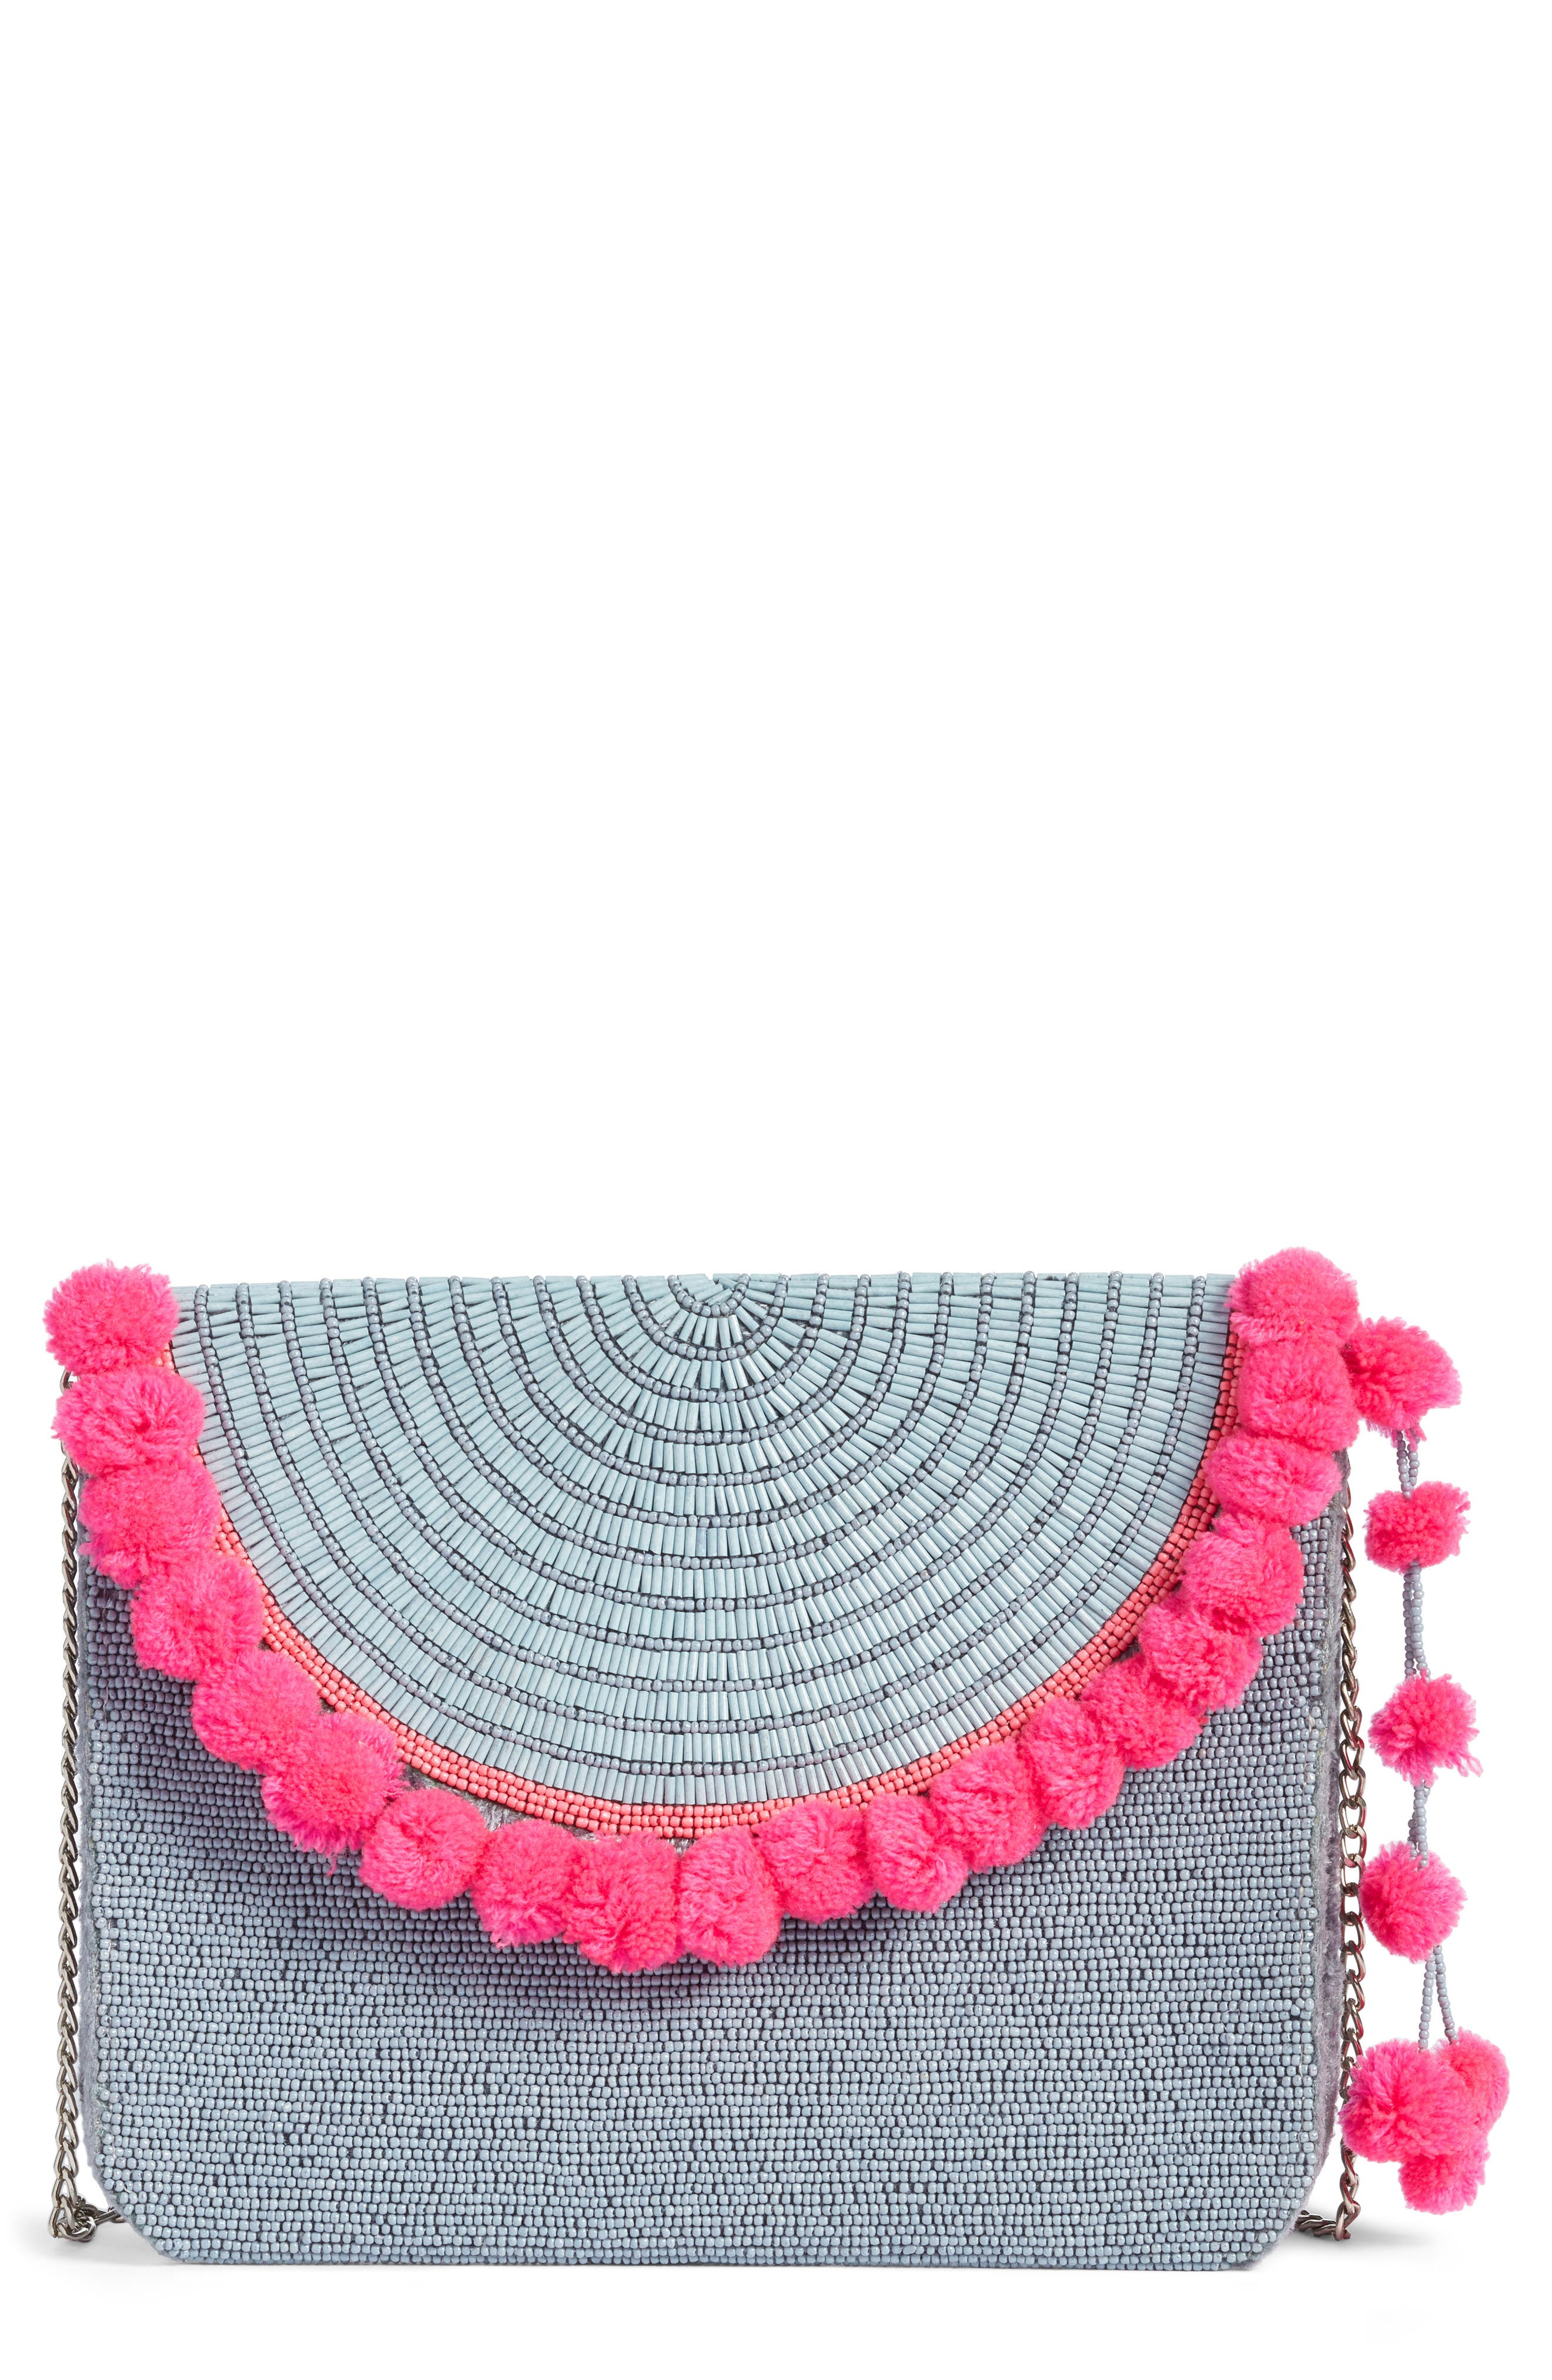 AREA STARS Mariah Beaded Clutch - Blue in Blue/ Pink